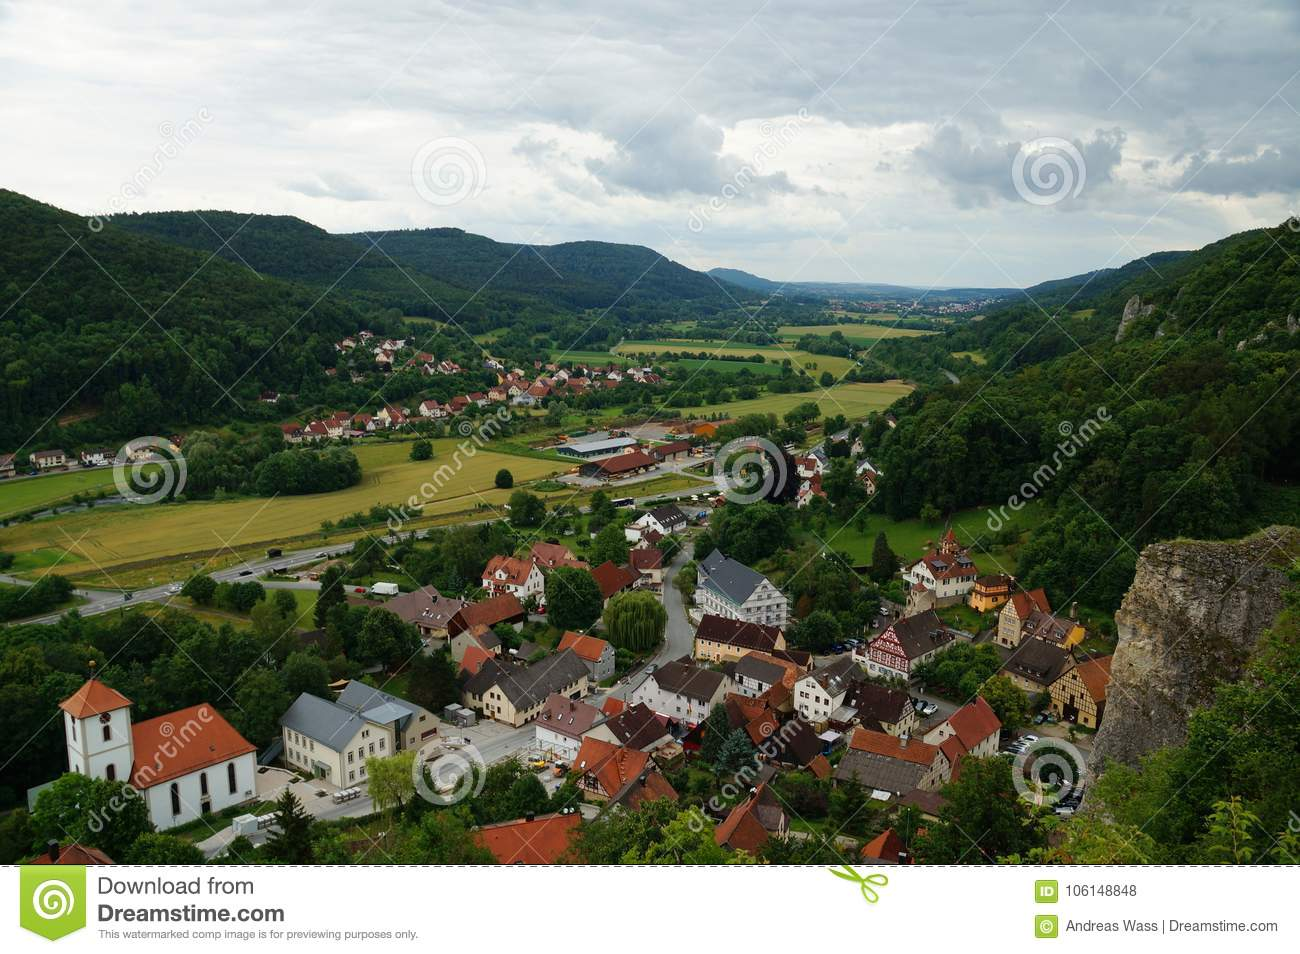 Colorful historic city in a green valley characterized by a river and fields in a karst landscape.